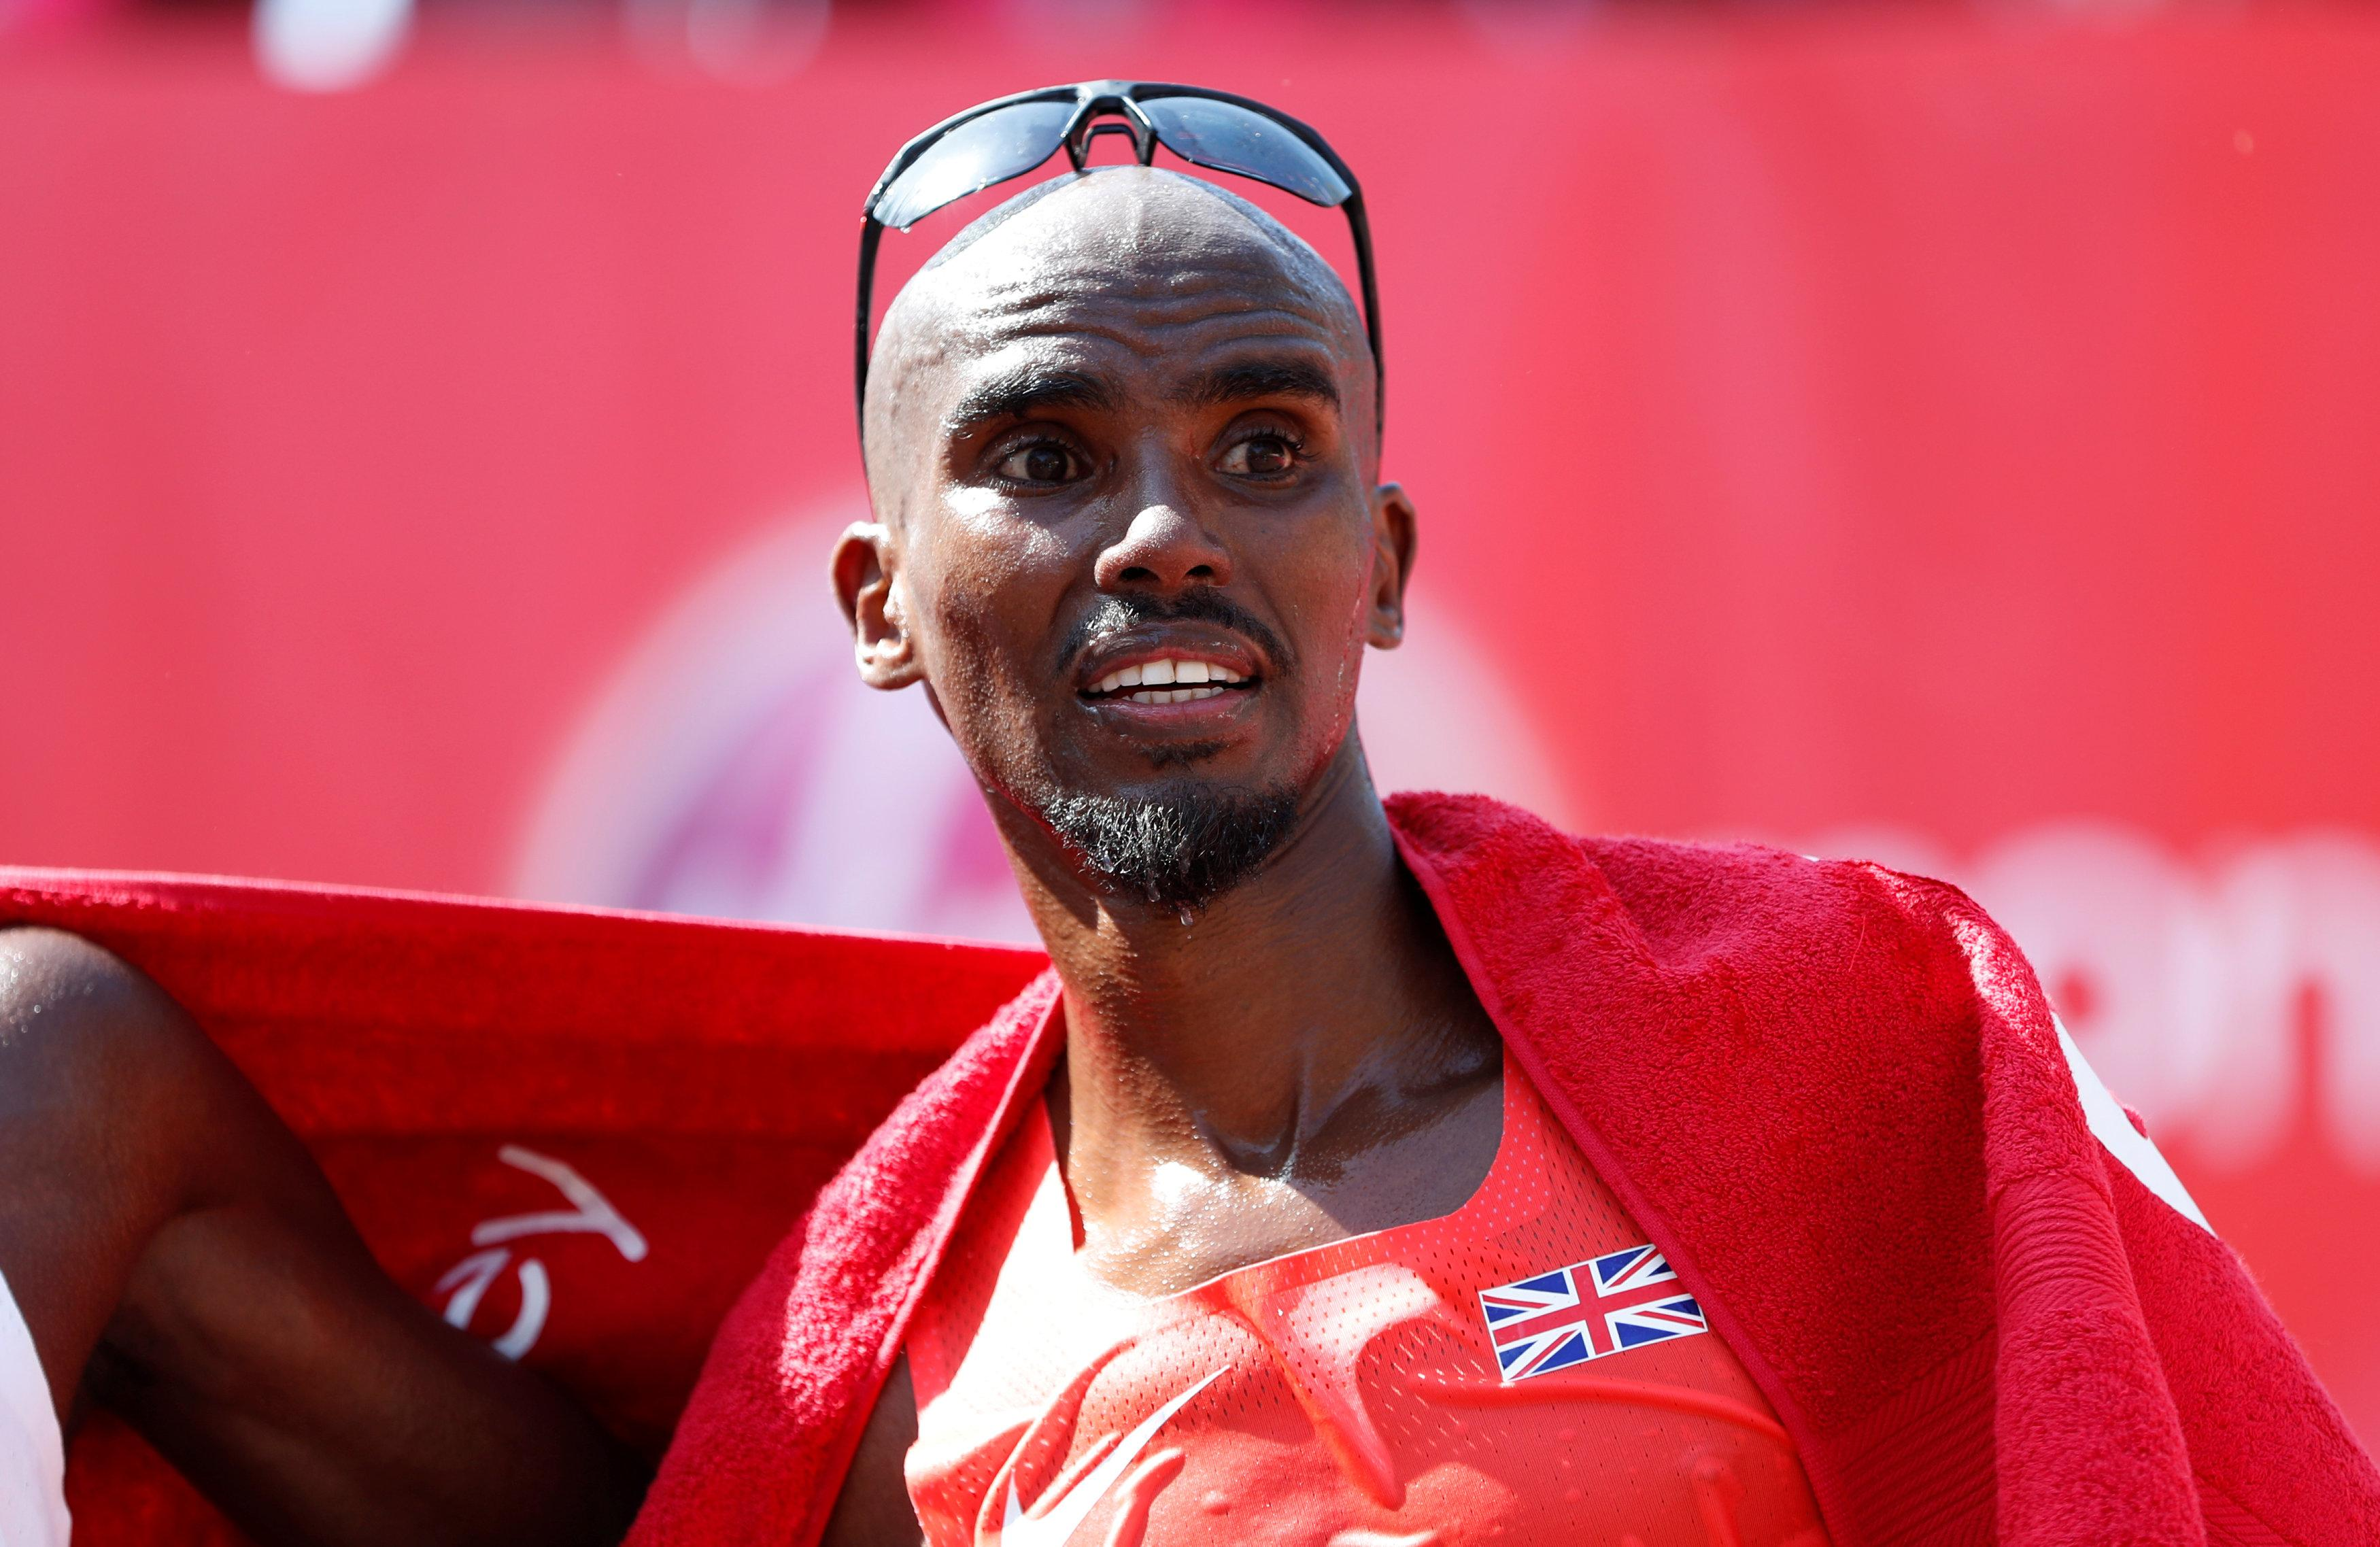 Mo Farah finished third in the Men's elite race at the London Marathon